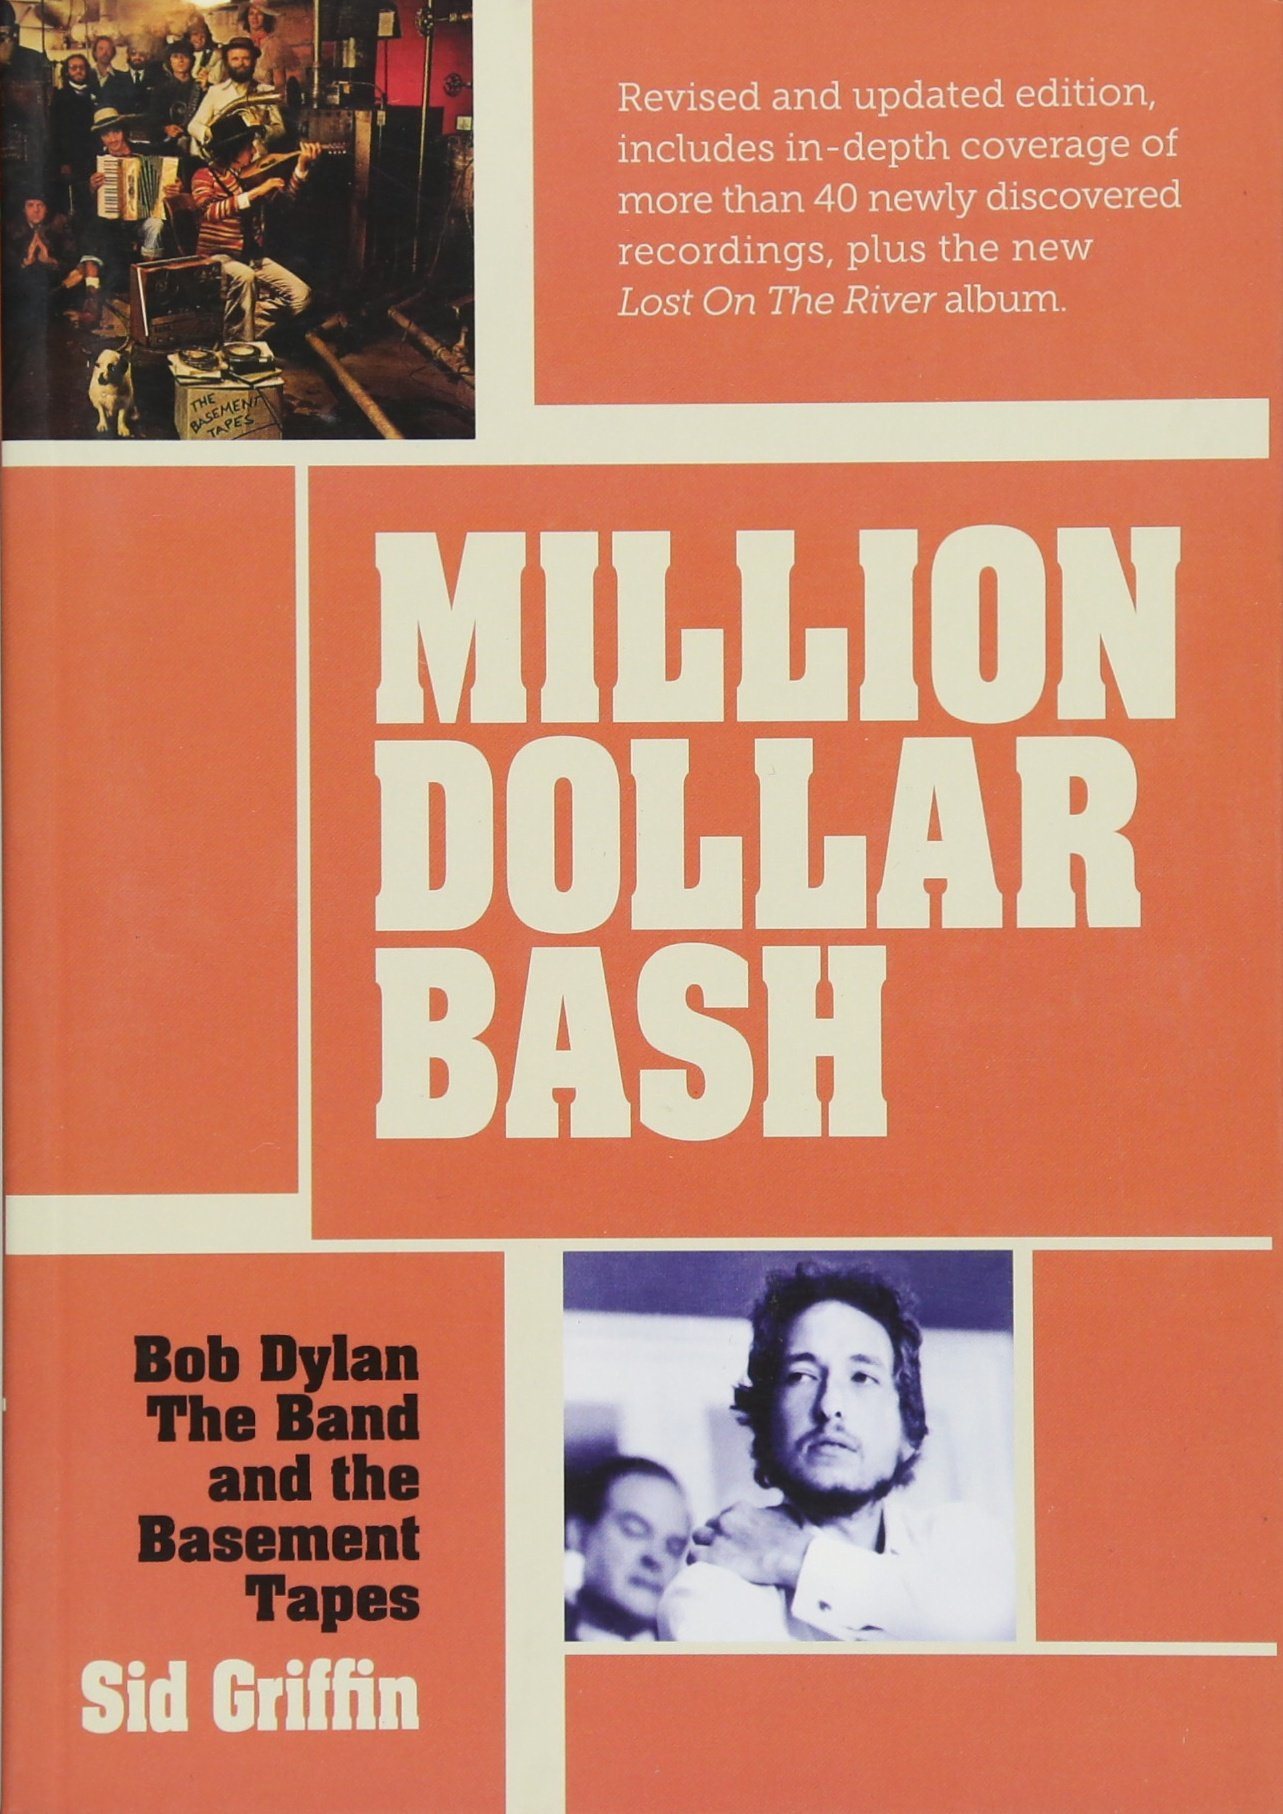 Read Online Million Dollar Bash: Bob Dylan, The Band and the Basement Tapes. Revised and updated edition ebook